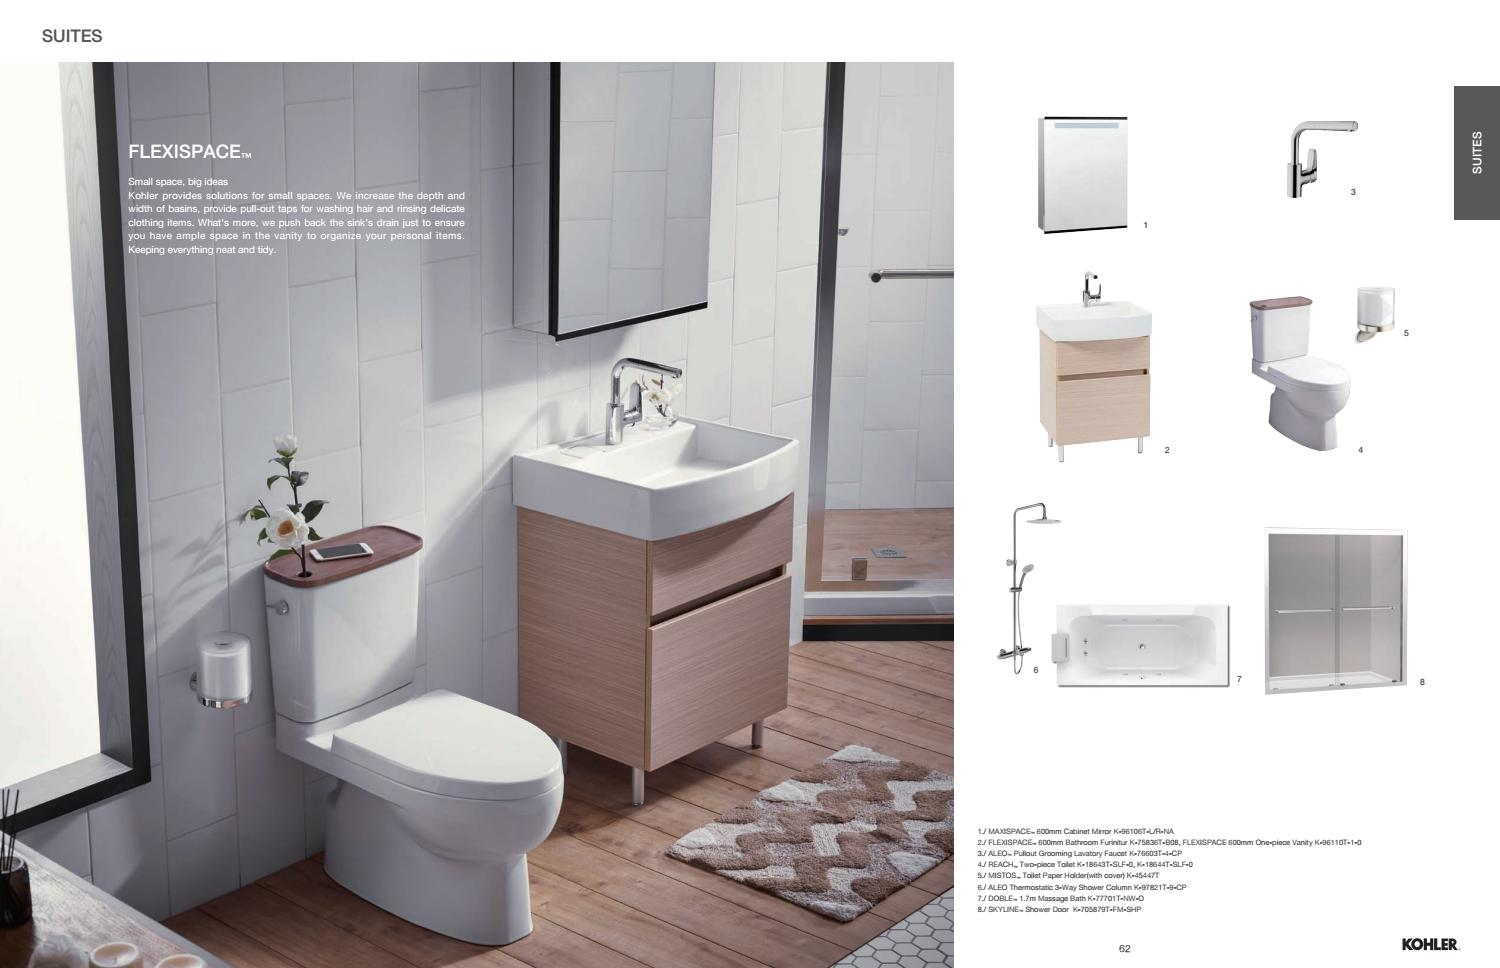 kohler fixtures asia book 2017 by